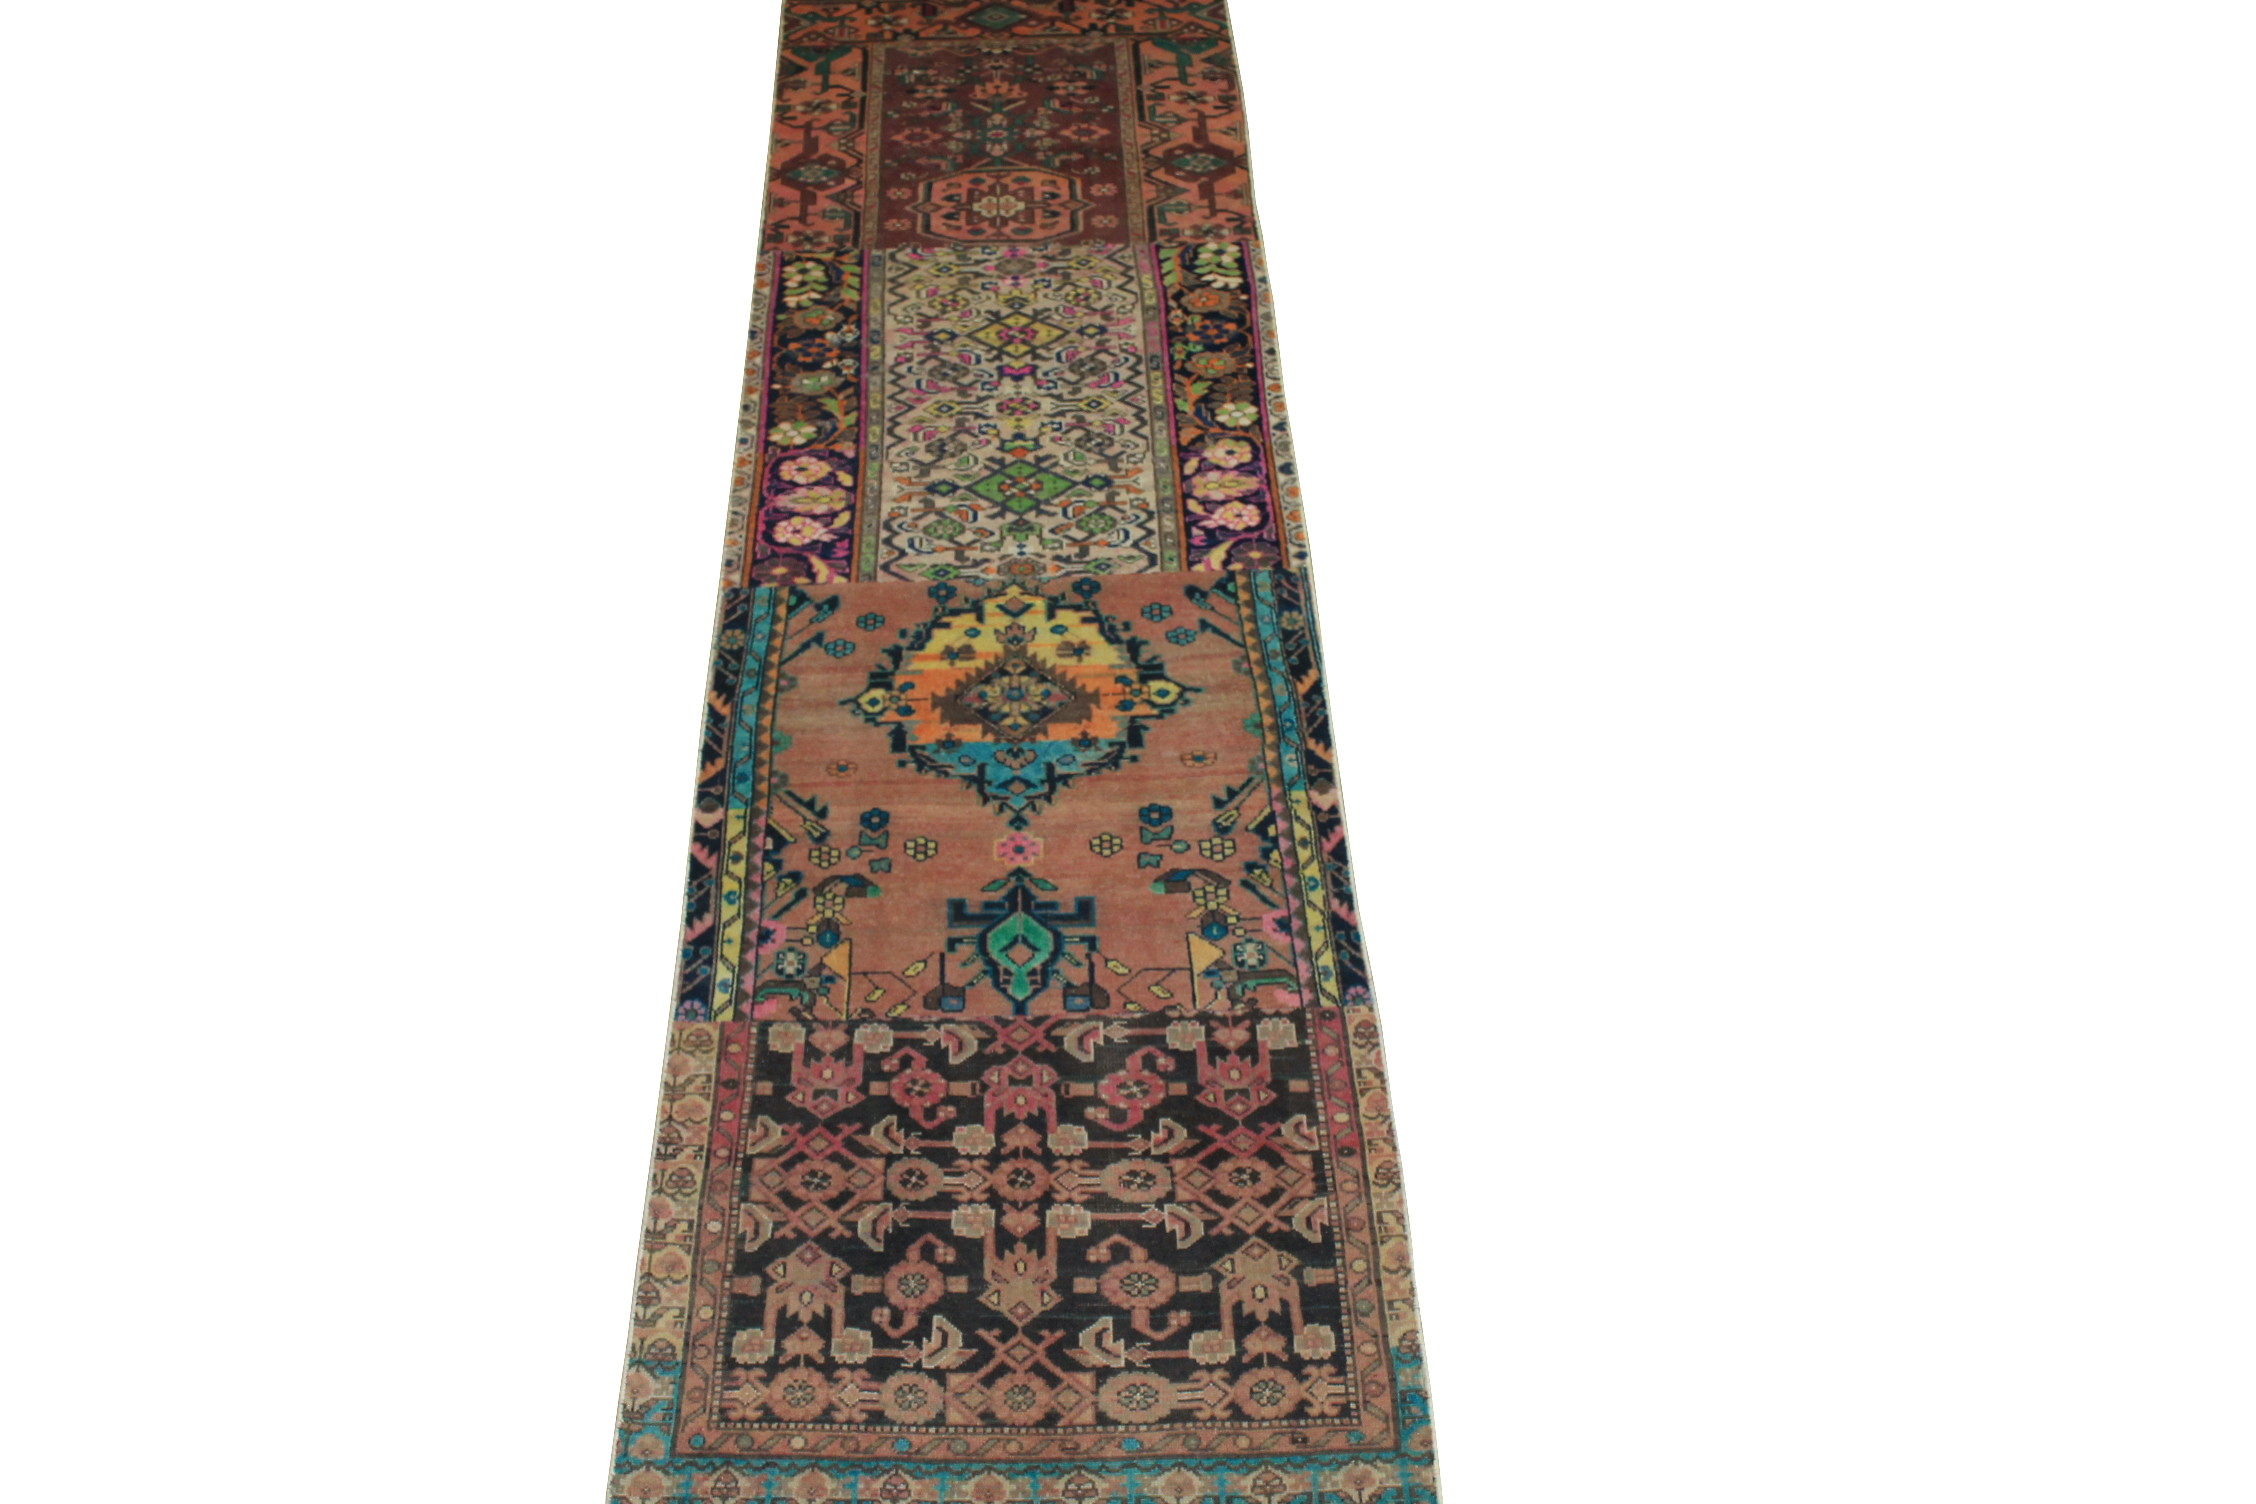 12 ft. Runner Vintage Hand Knotted Wool Area Rug - MR024507